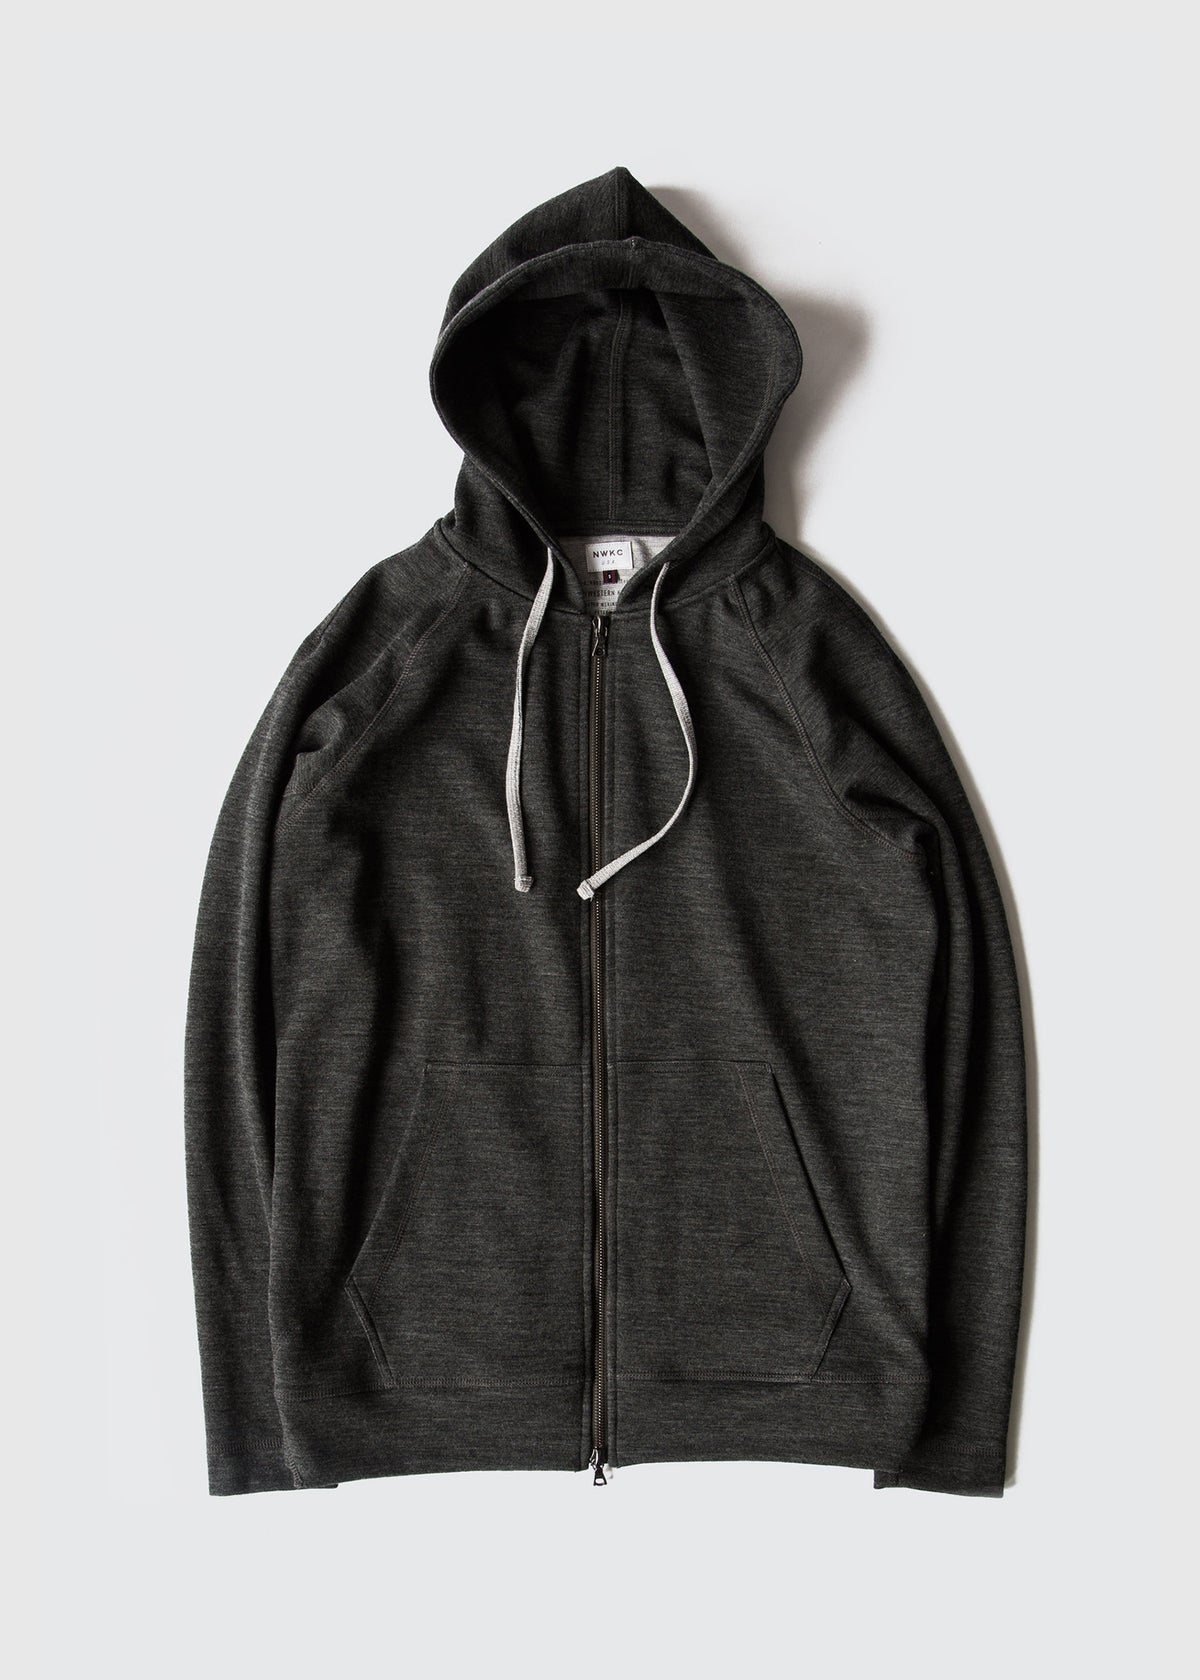 006 - HOODED ZIP - CHARCOAL - Wilson & Willy's - MPLS Neighbor Goods